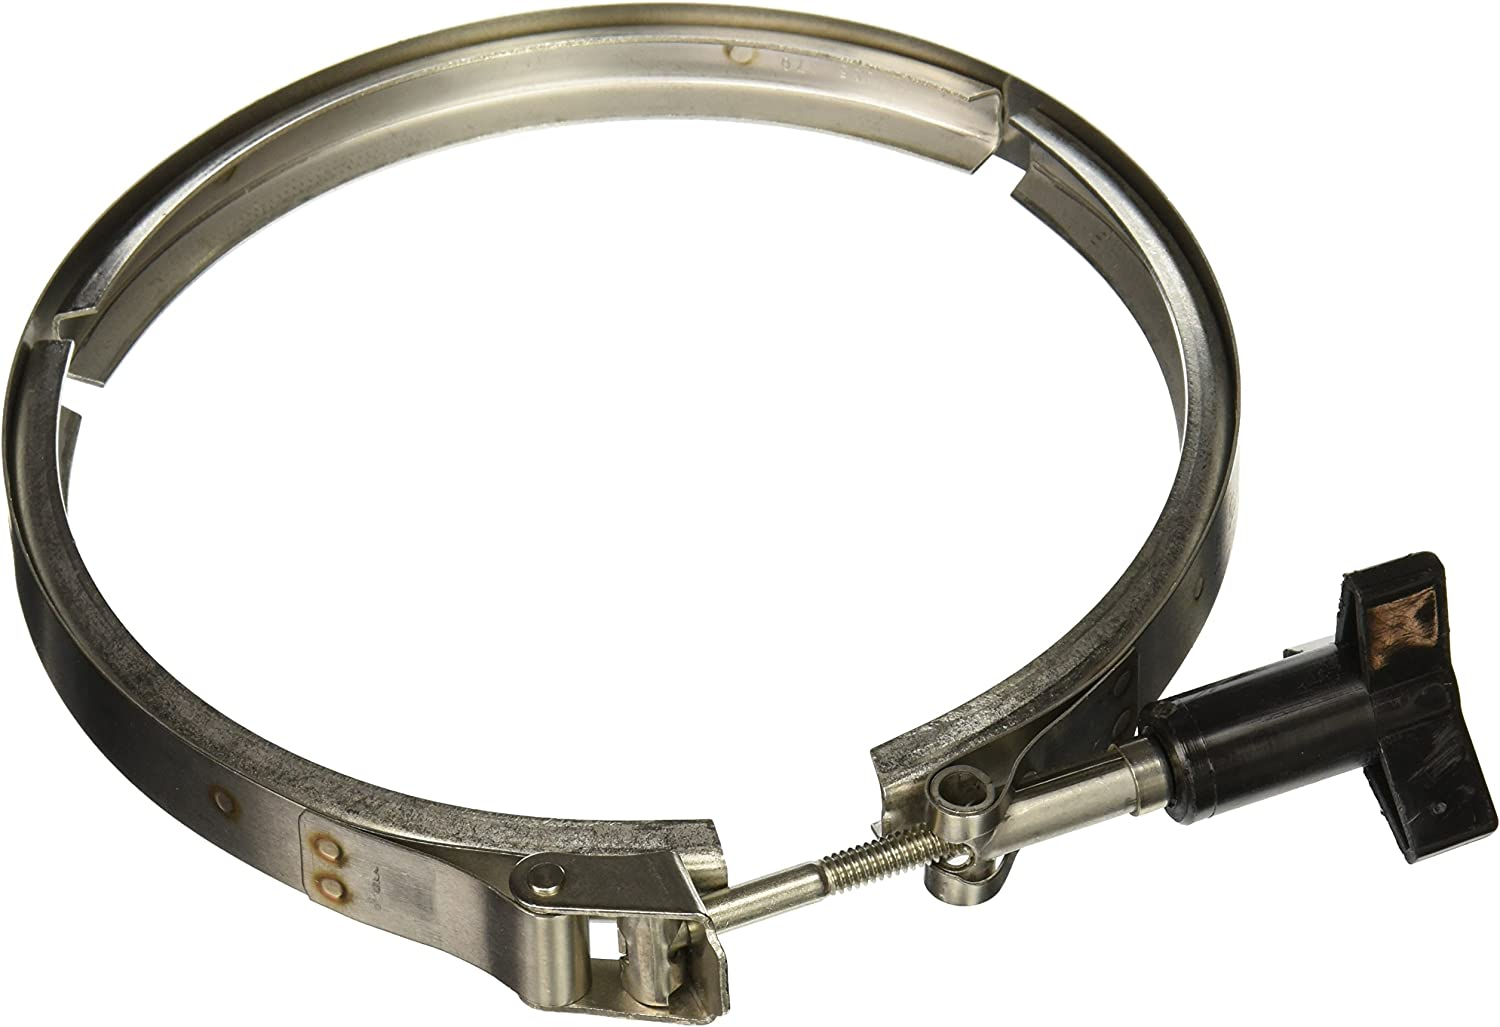 B004VTHC84 Pentair 070711 Clamp Band Assembly for Old-Style WhisperFlo, QuiteFlo, and AquaTron Pumps - Stainless Steel 8172AjmiRnL